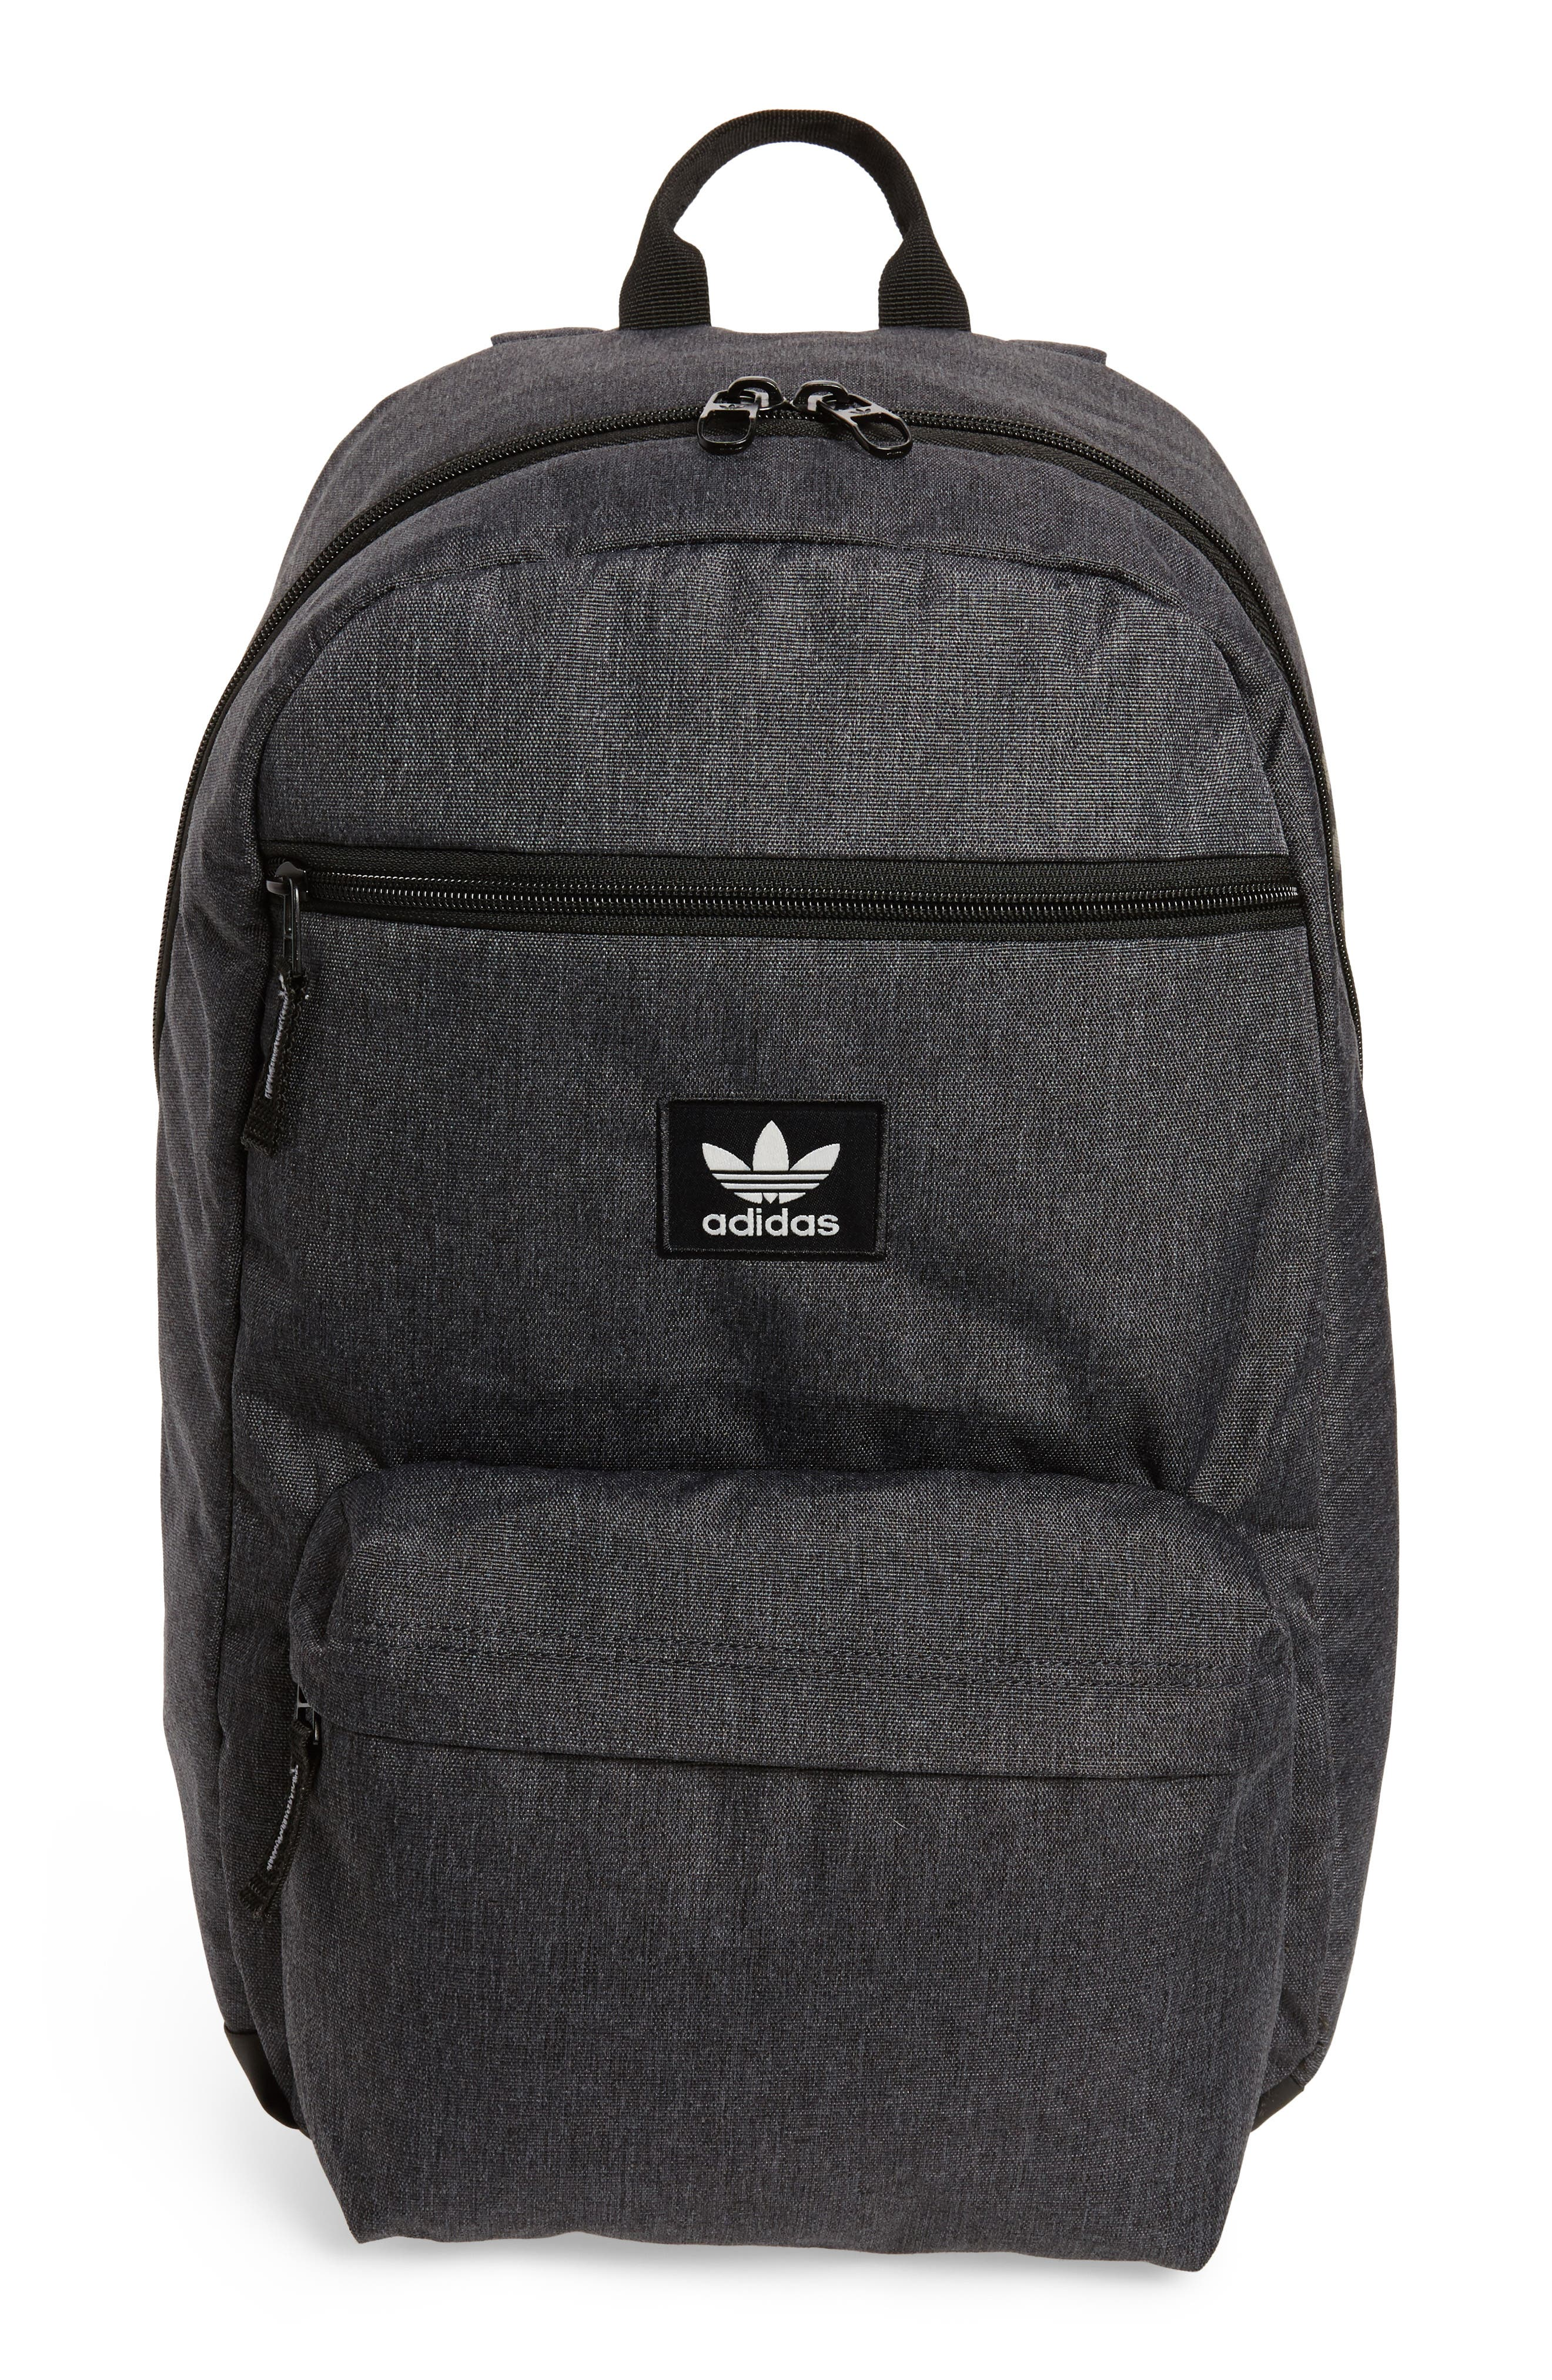 National Plus Backpack,                         Main,                         color, BLACK/ GREY HEATHER/ WHITE